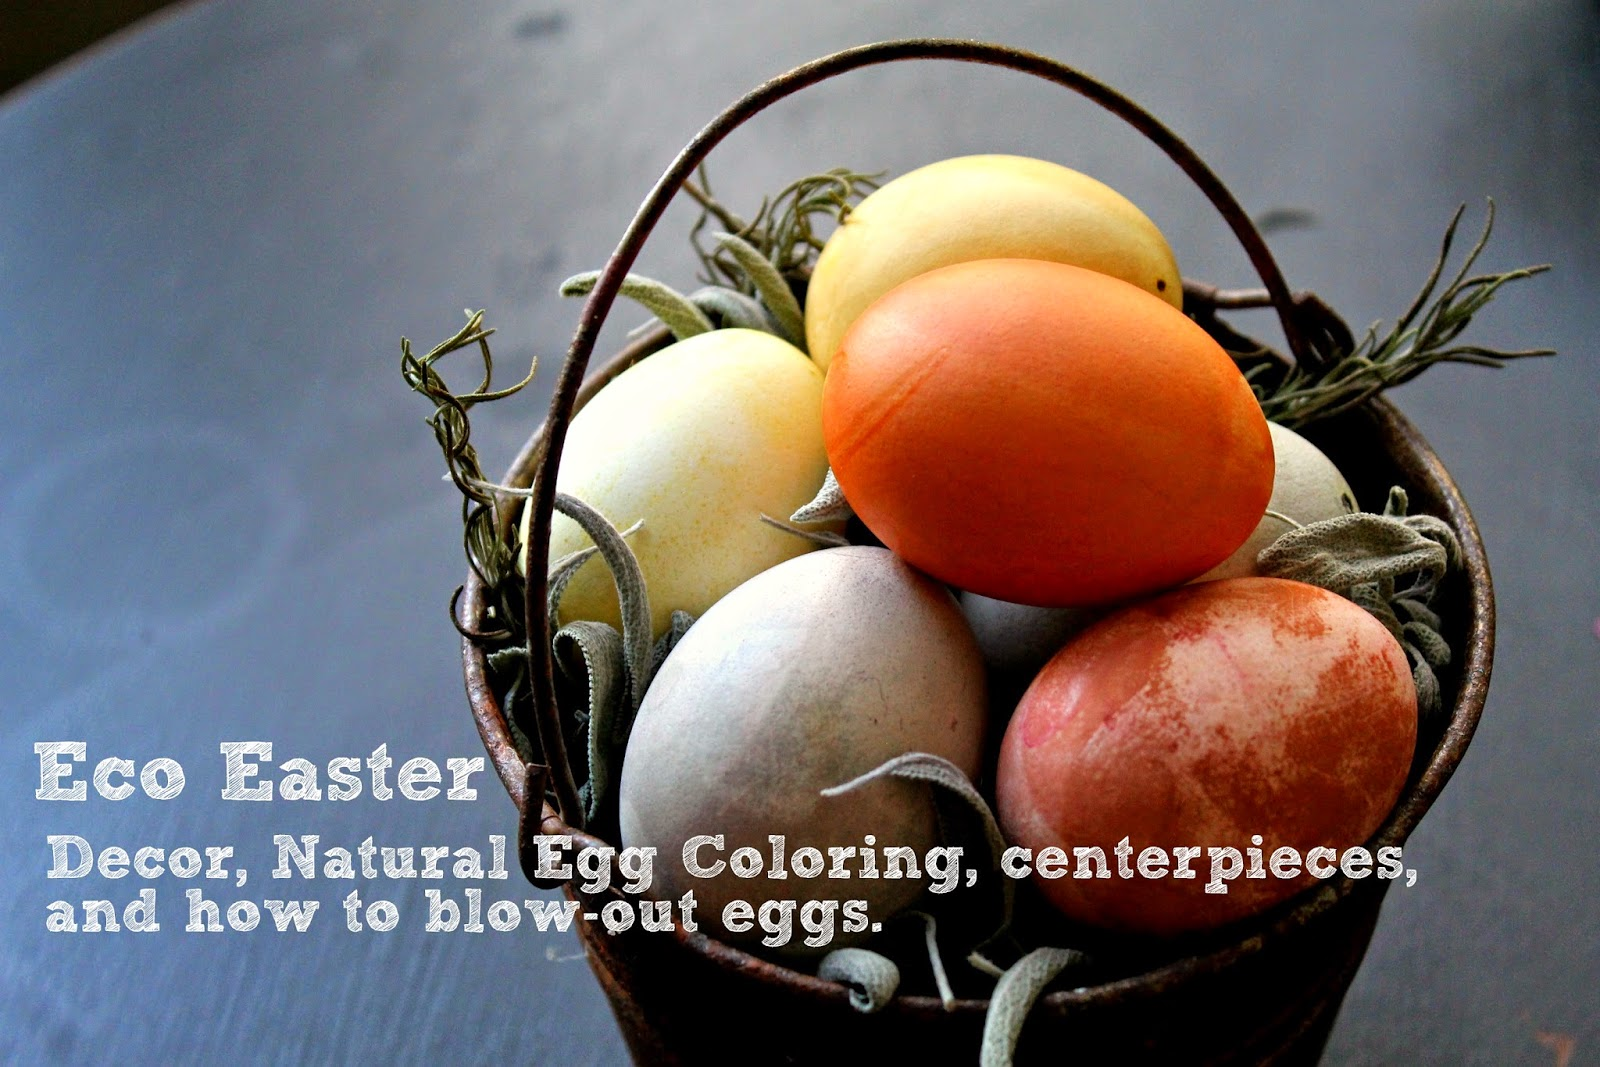 Eco Easter: How to blow out and naturally color eggs.